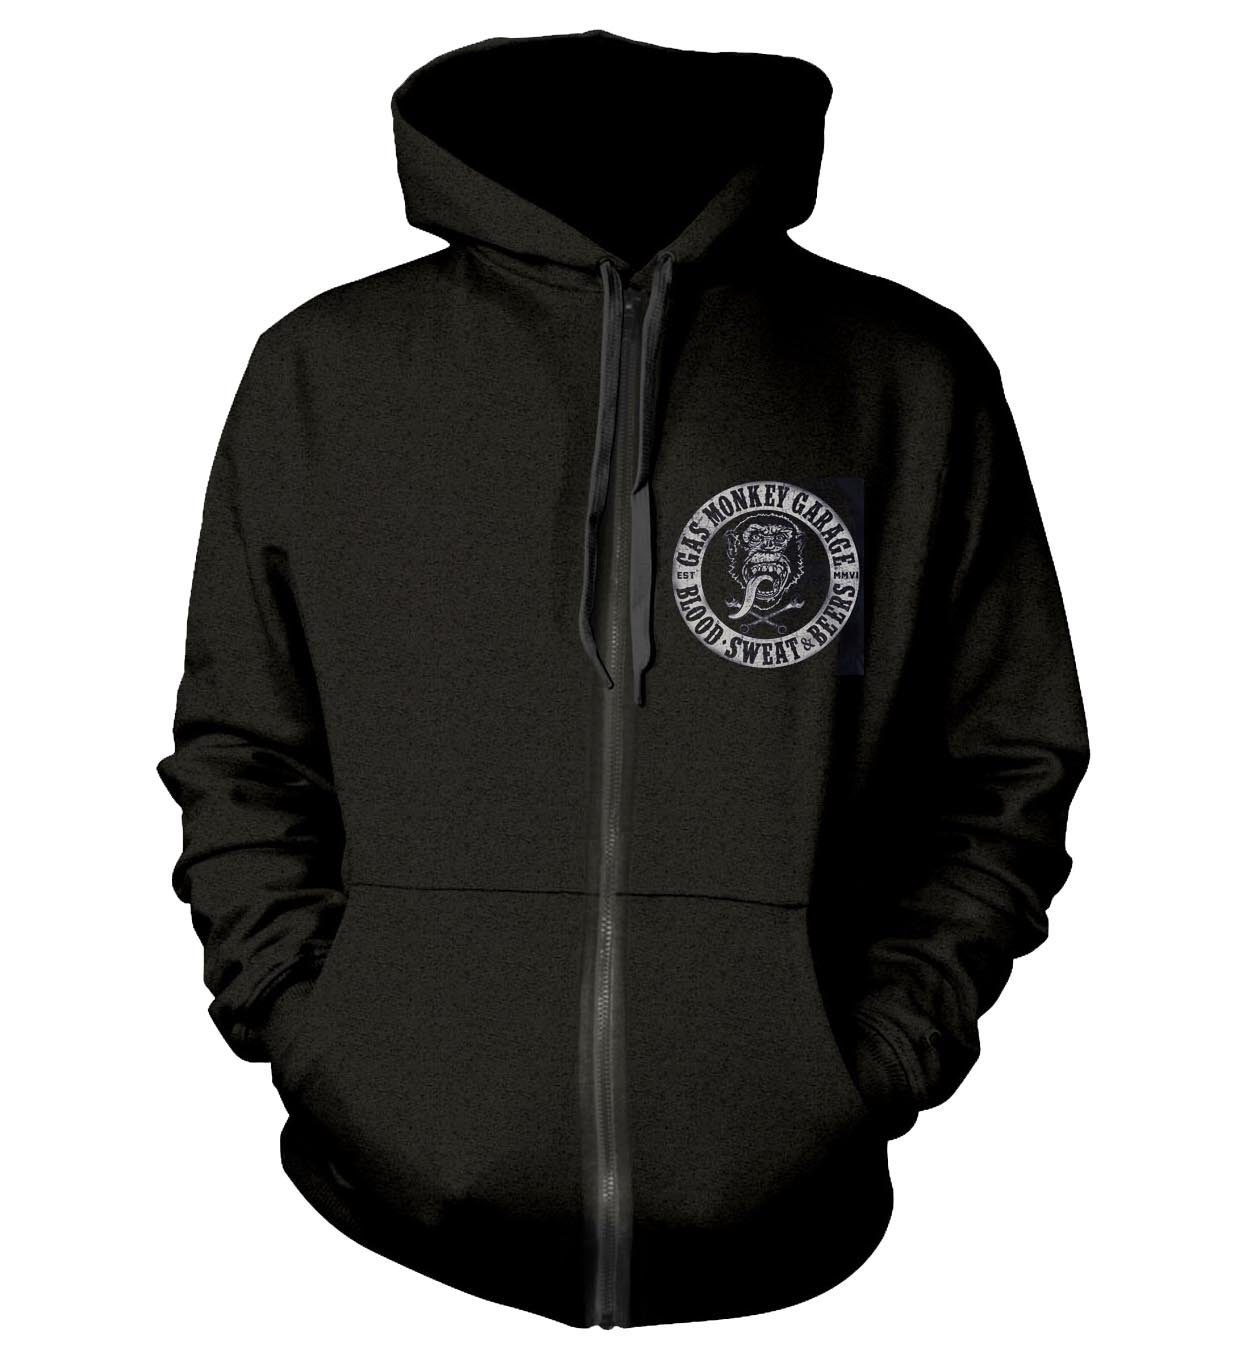 Official-PH-GAS-MONKEY-GARAGE-Hoody-Hoodie-Distressed-LOGO-Zip-All-Sizes thumbnail 23